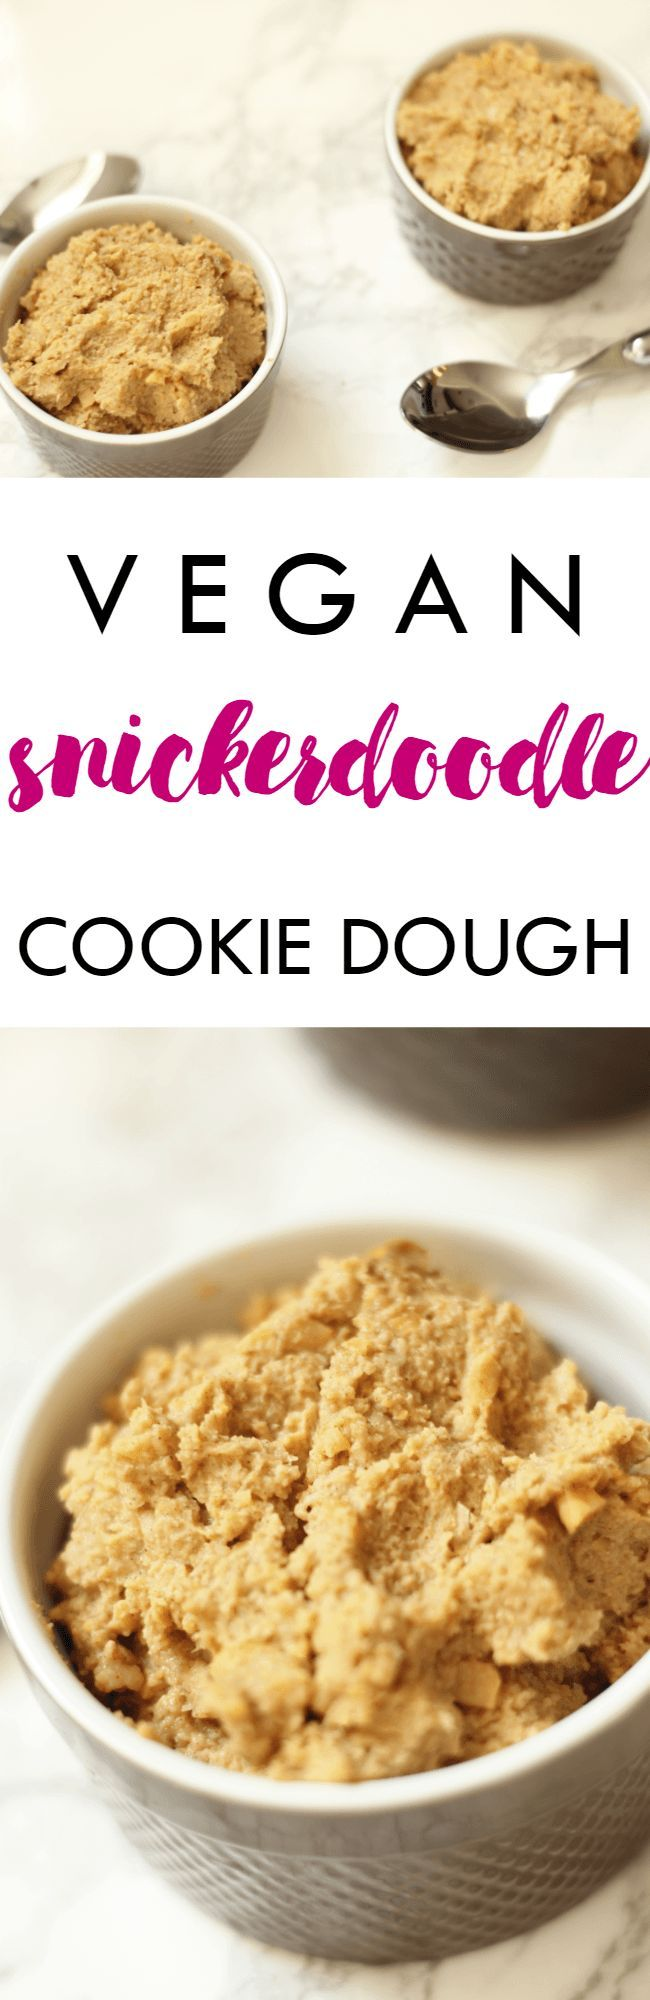 Even your mom would approve of this Vegan Dairy Free Snickerdoodle Cookie Dough! Recipe ready in minutes and serves two | Lean, Clean, & Brie